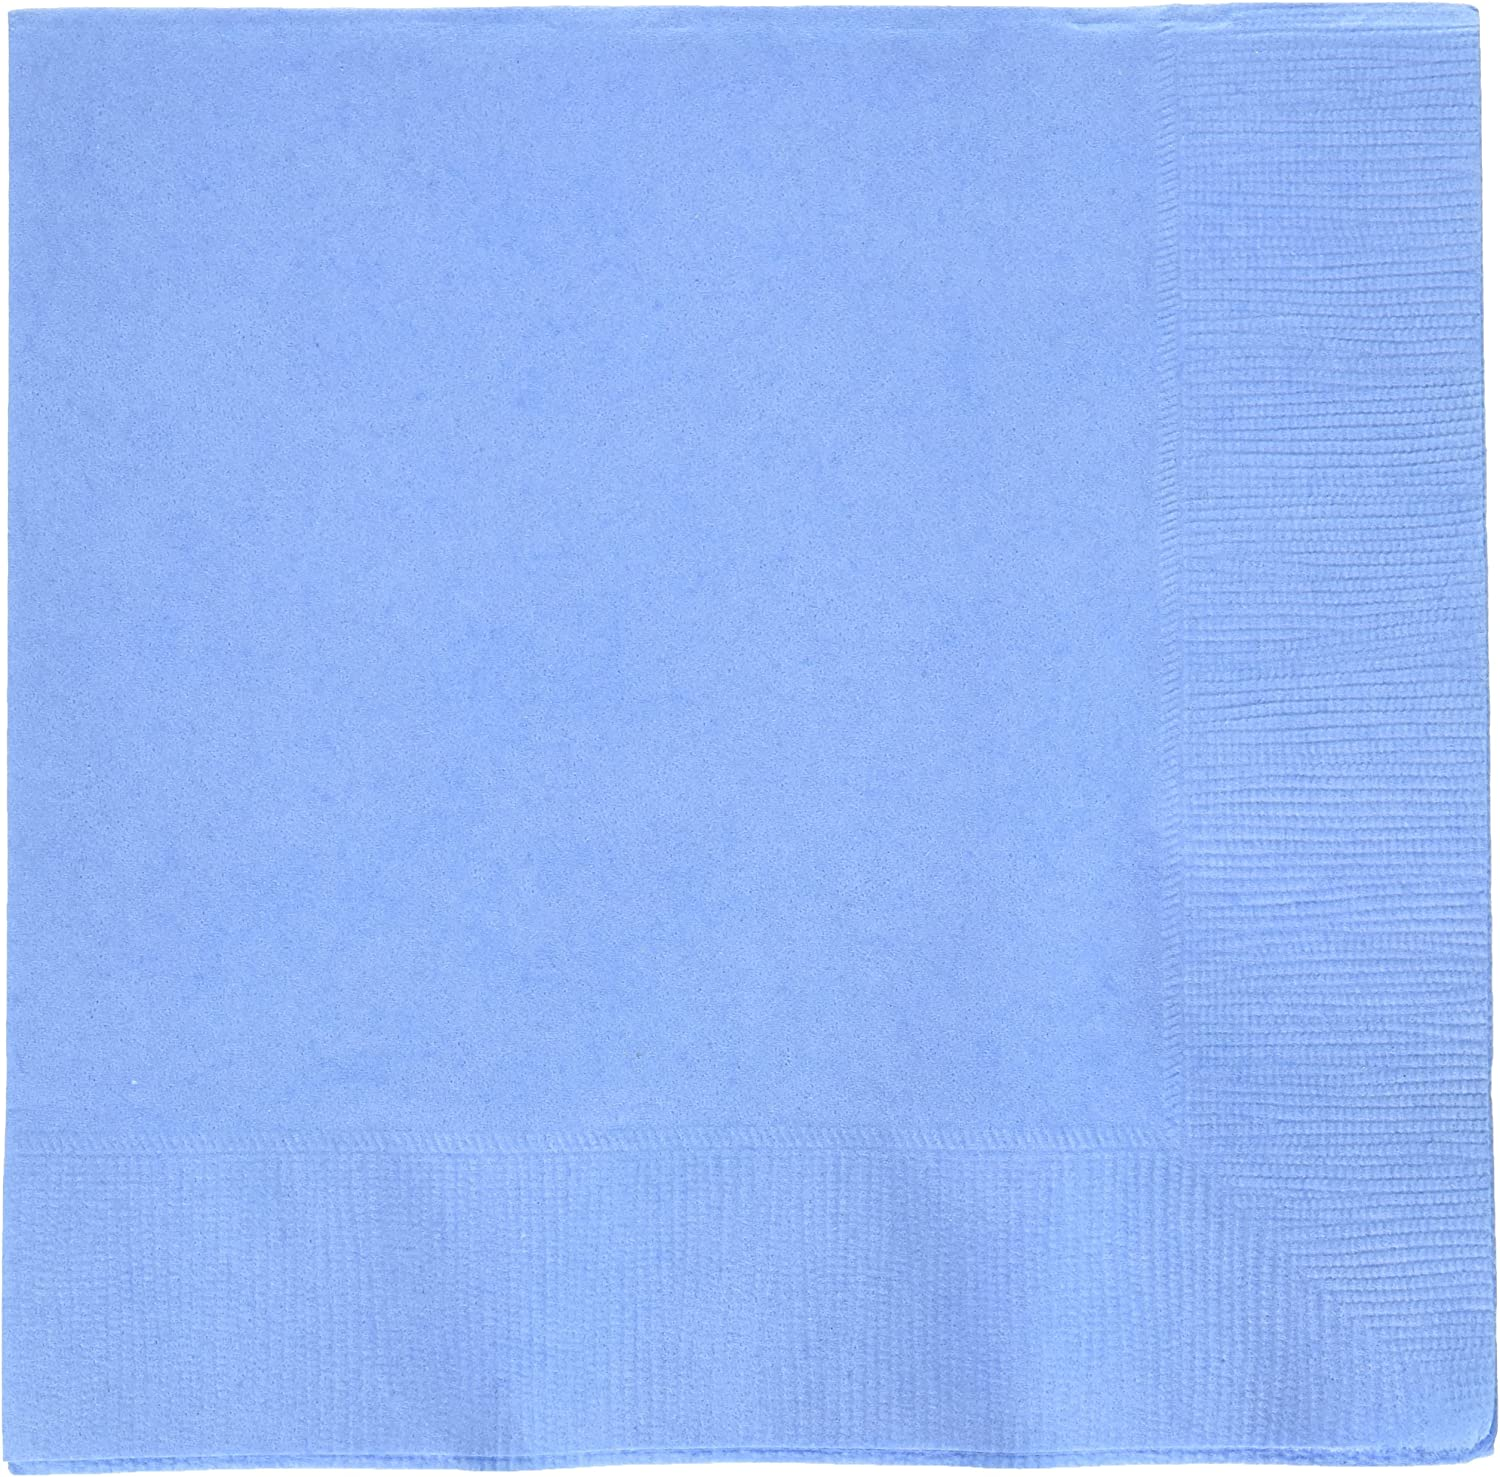 Amscan Pastel Blue 2-Ply Paper Luncheon Napkins, 50 Ct. | Party Tableware